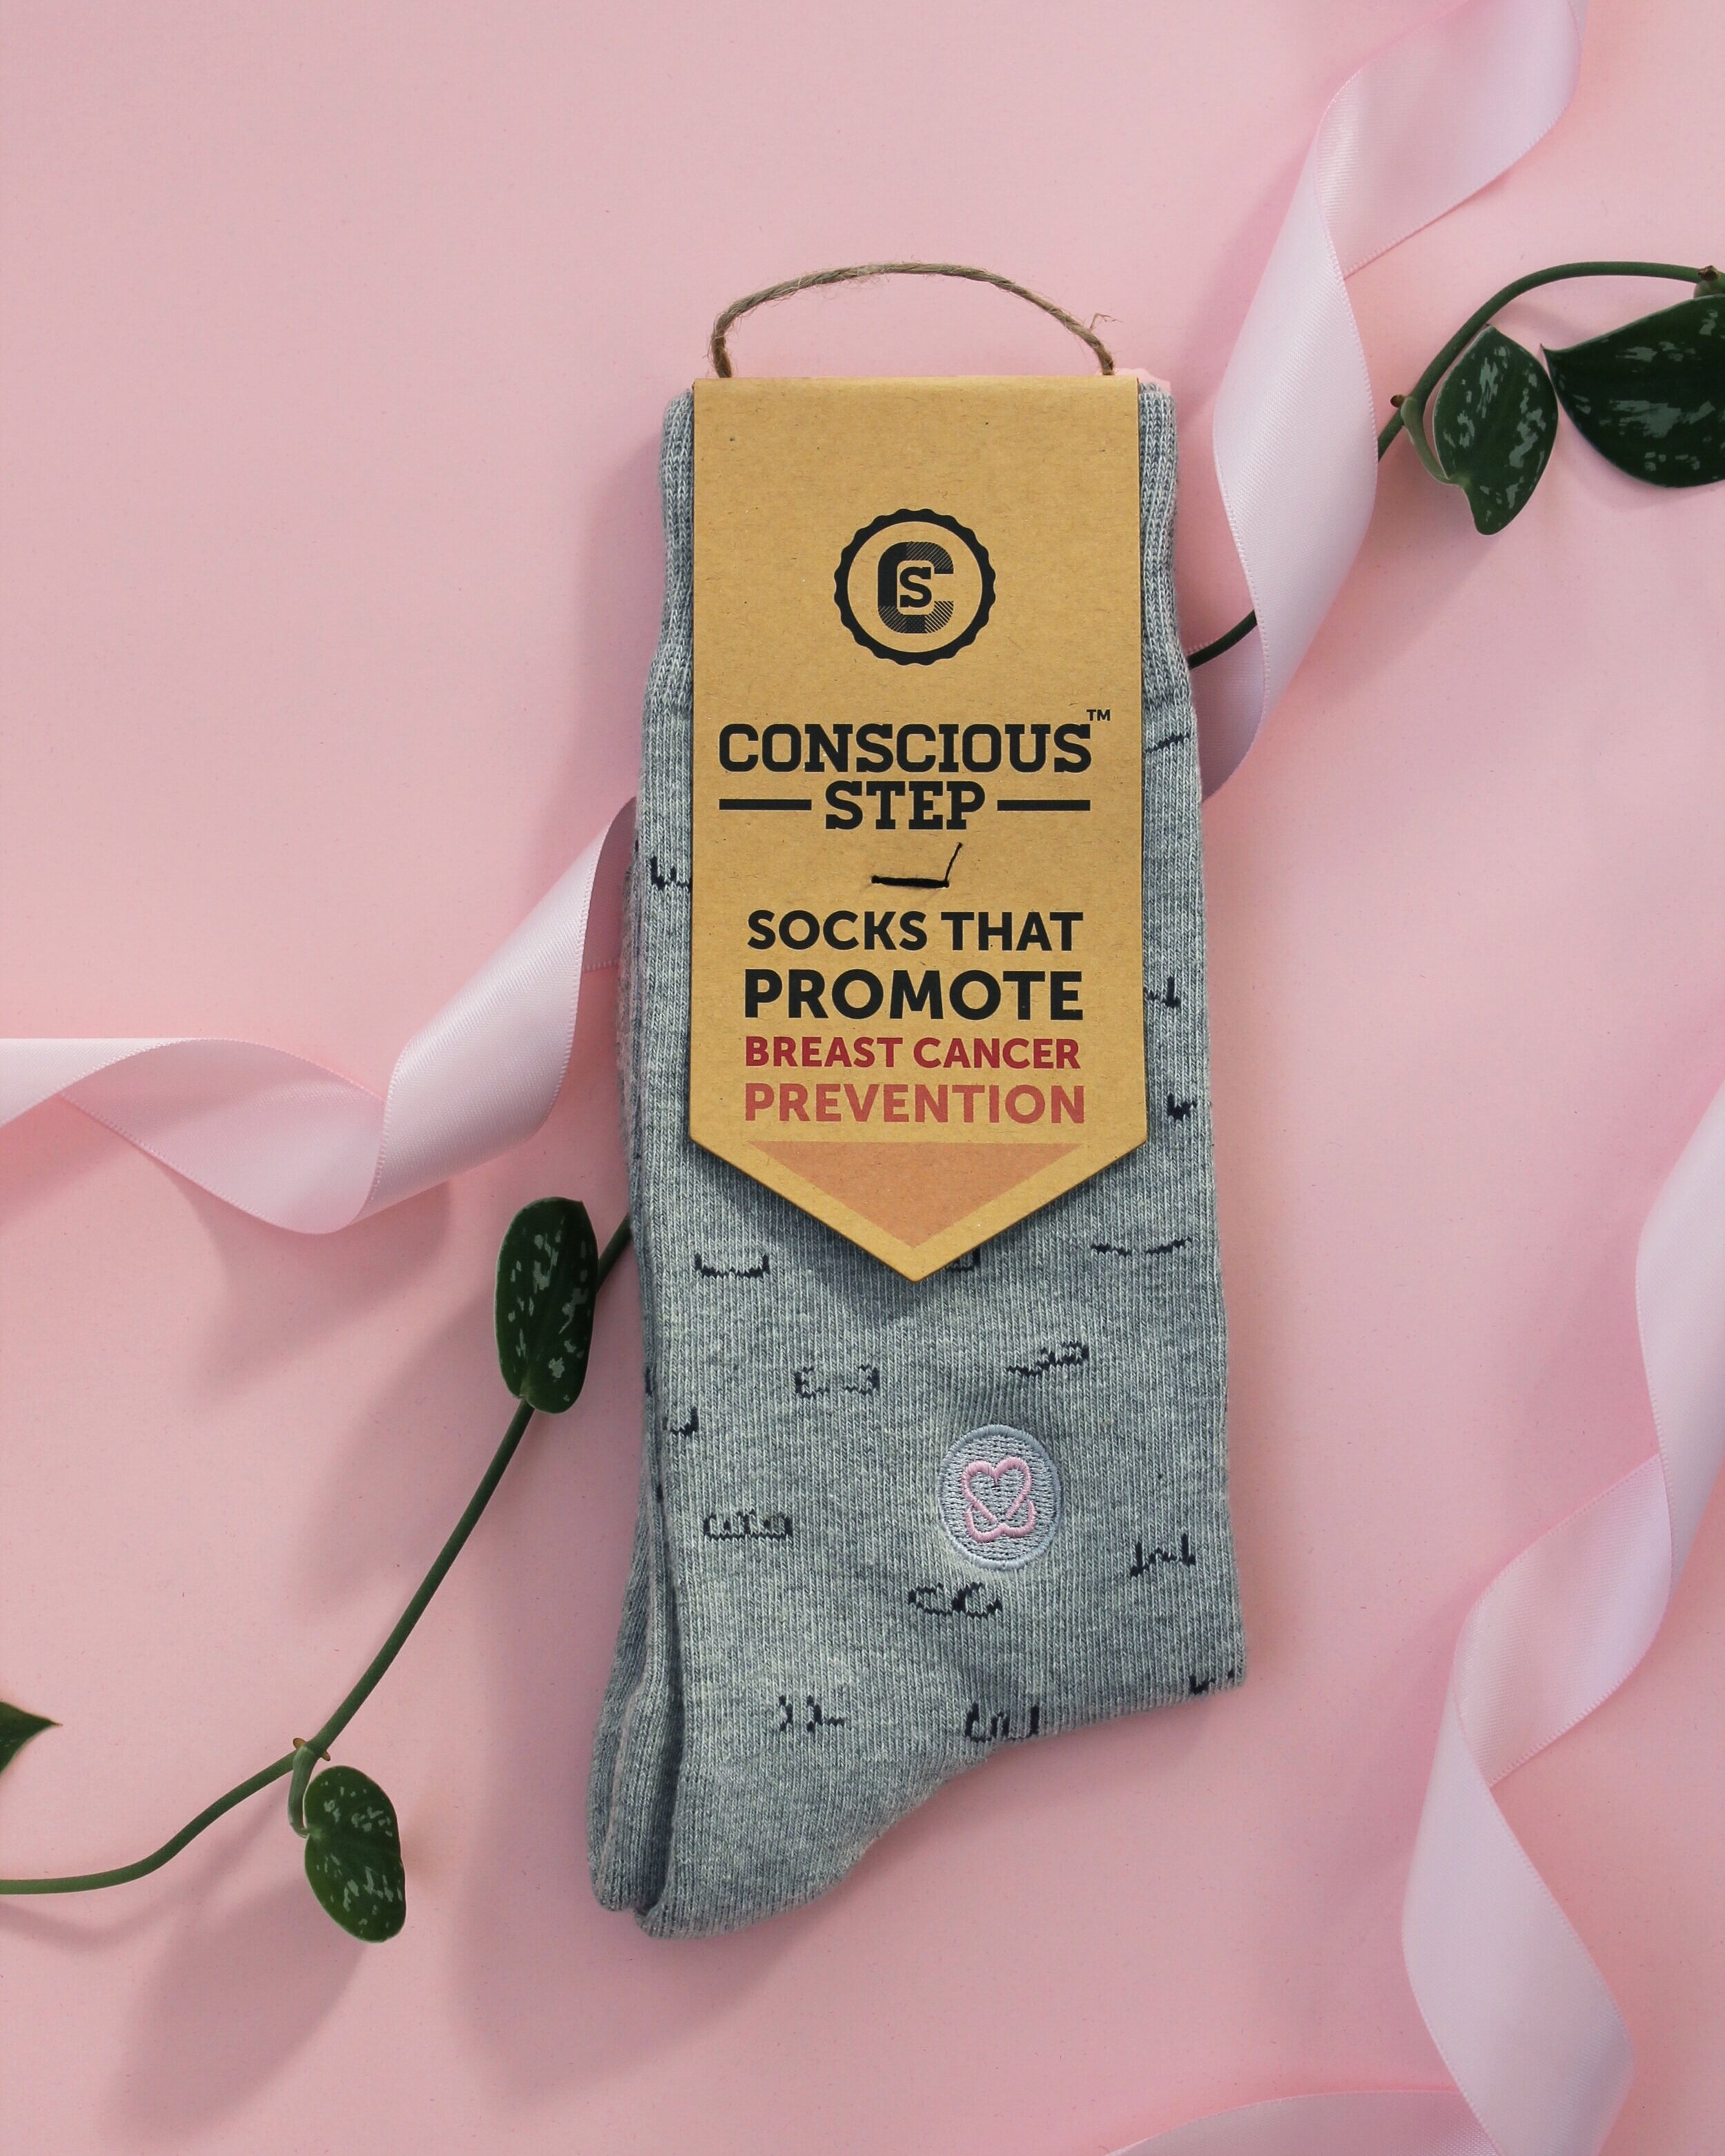 Conscious Step - $1 per pair of the Socks That Promote Breast Cancer Prevention collection benefits KAB!